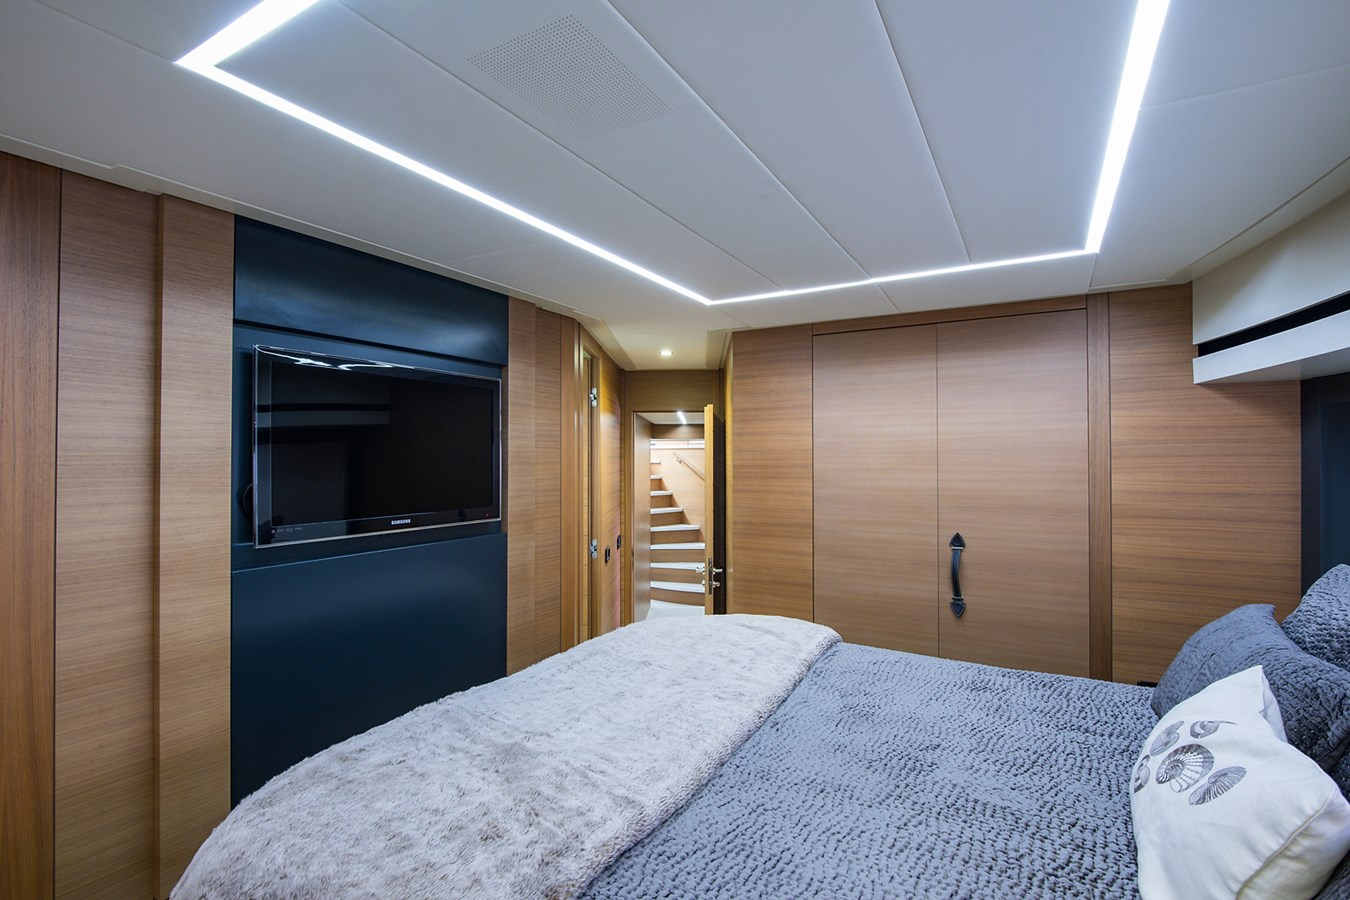 Incognito_VIP Stateroom3 2012 PERSHING  Motor Yacht 2810419